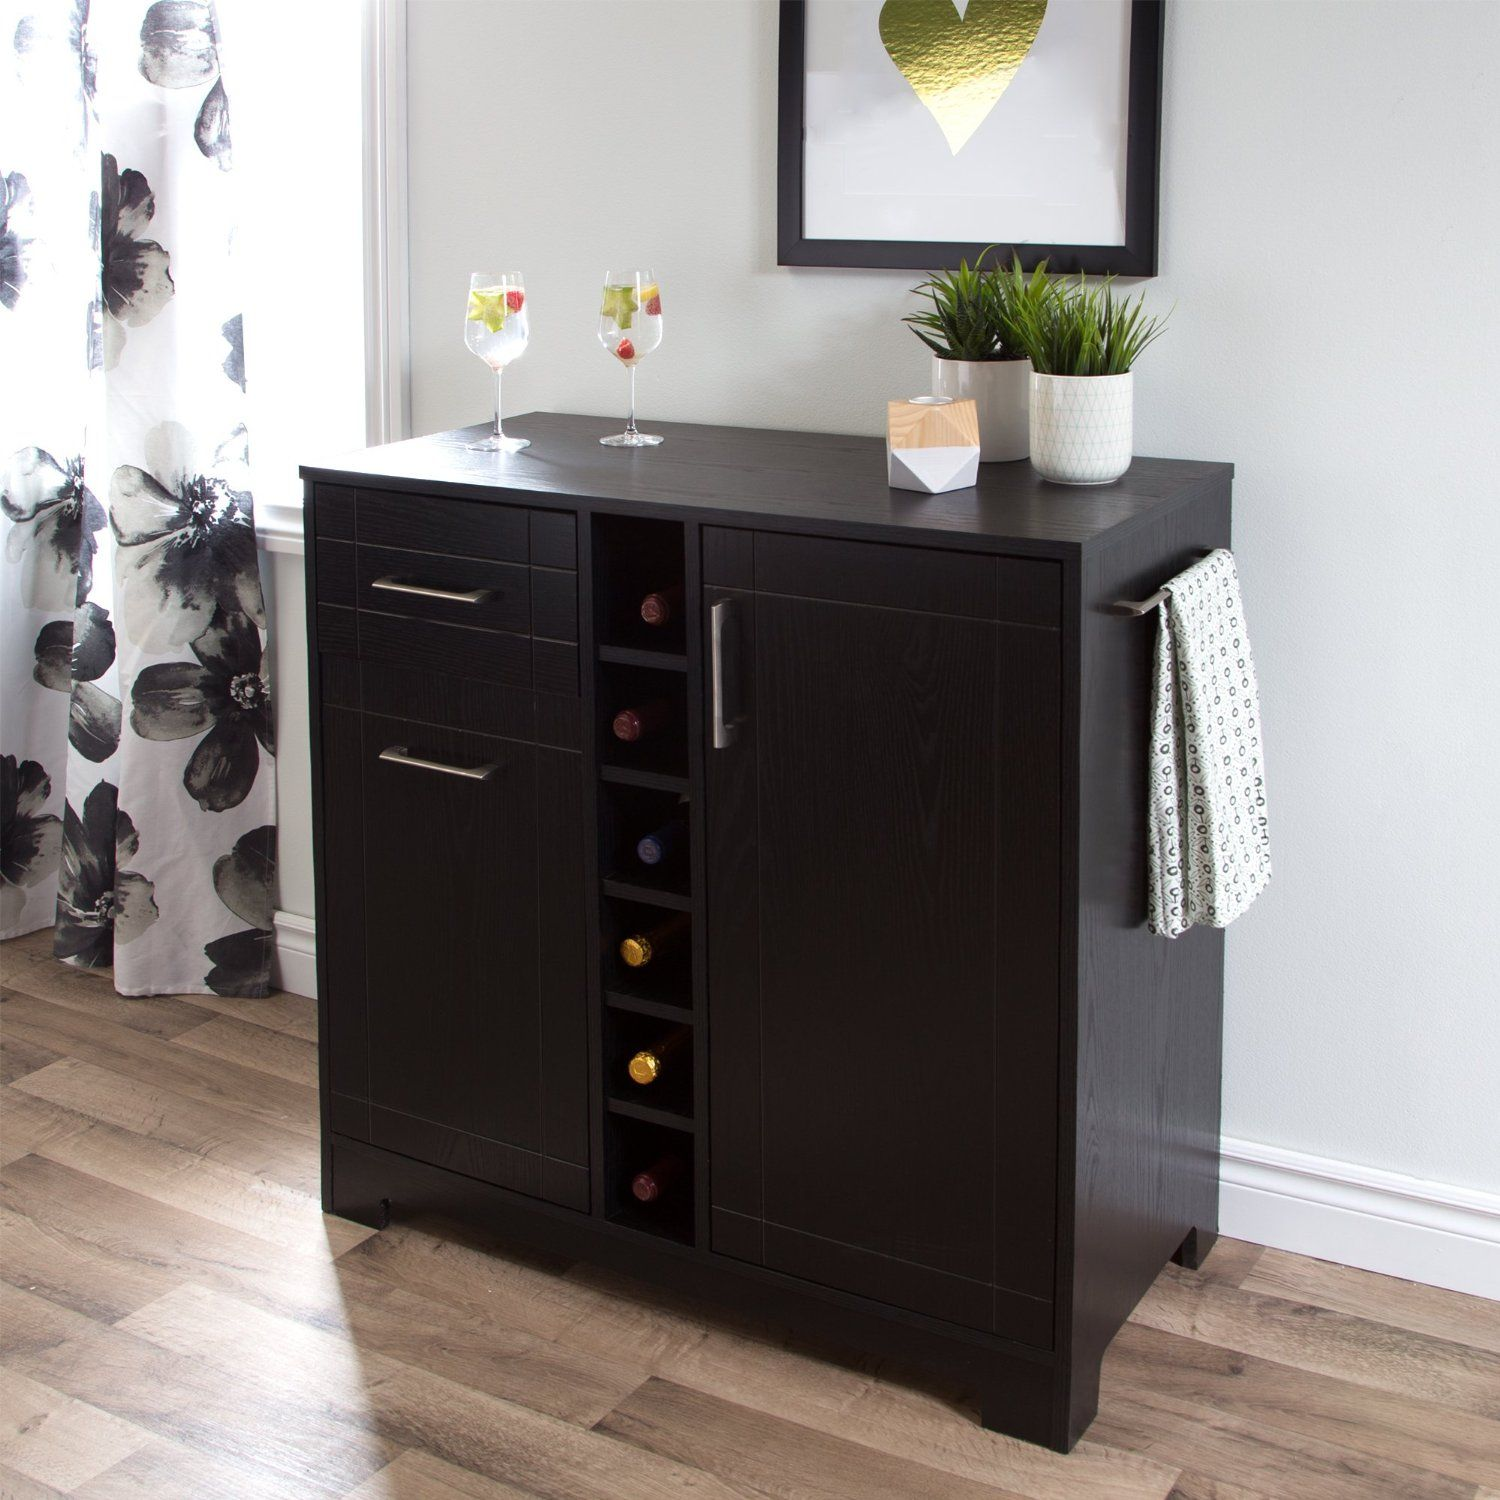 Amazon South Shore Vietti Bar Cabinet With Bottle And Glass Storage Black